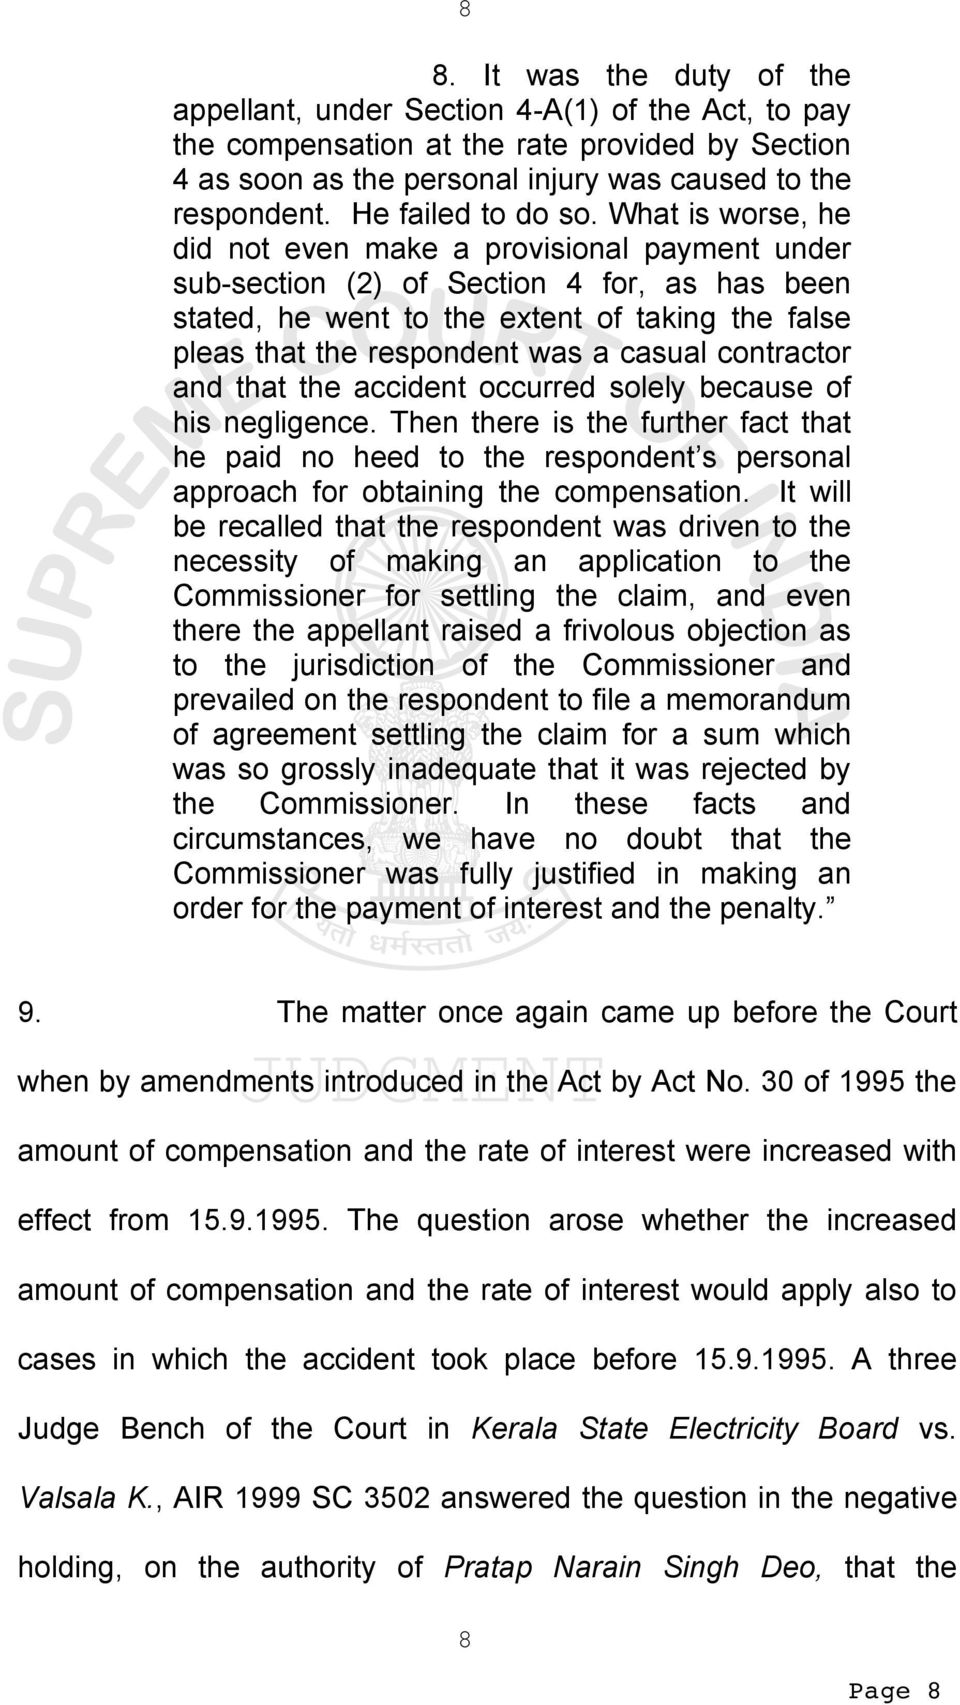 What is worse, he did not even make a provisional payment under sub-section (2) of Section 4 for, as has been stated, he went to the extent of taking the false pleas that the respondent was a casual